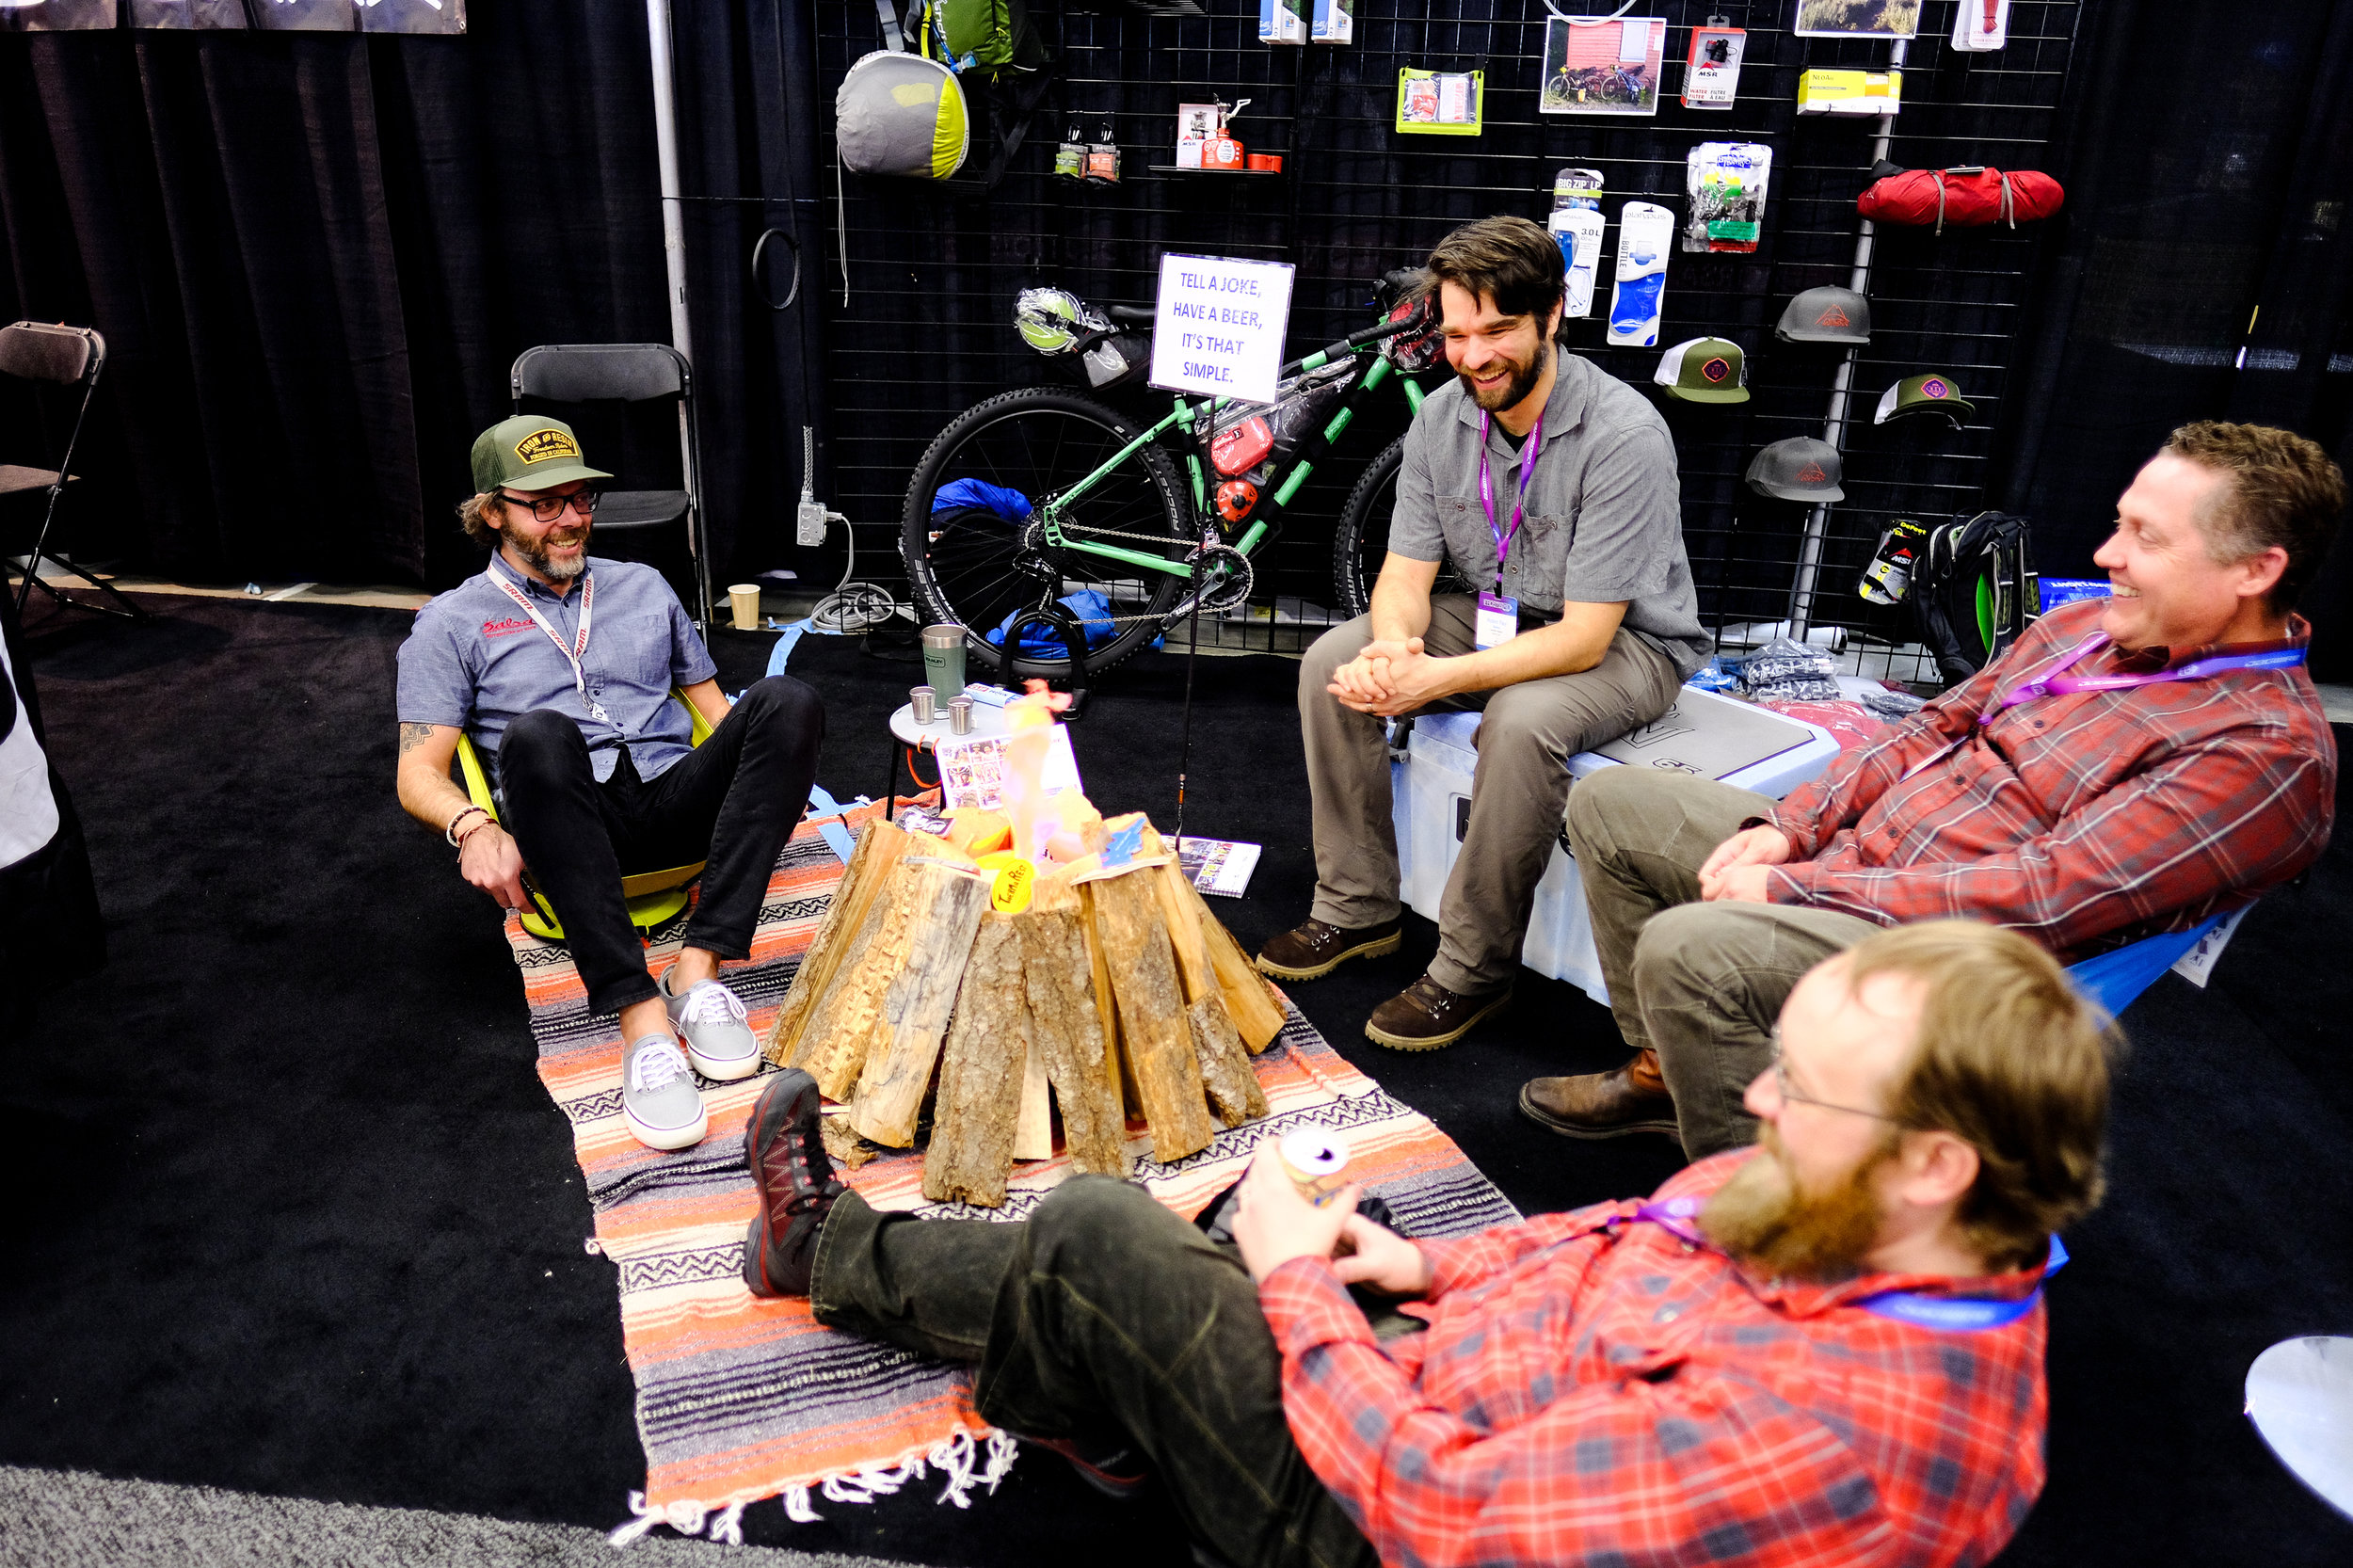 These guys have trade shows figured out: Tell them a joke, they give you a beer! Plus campfire.